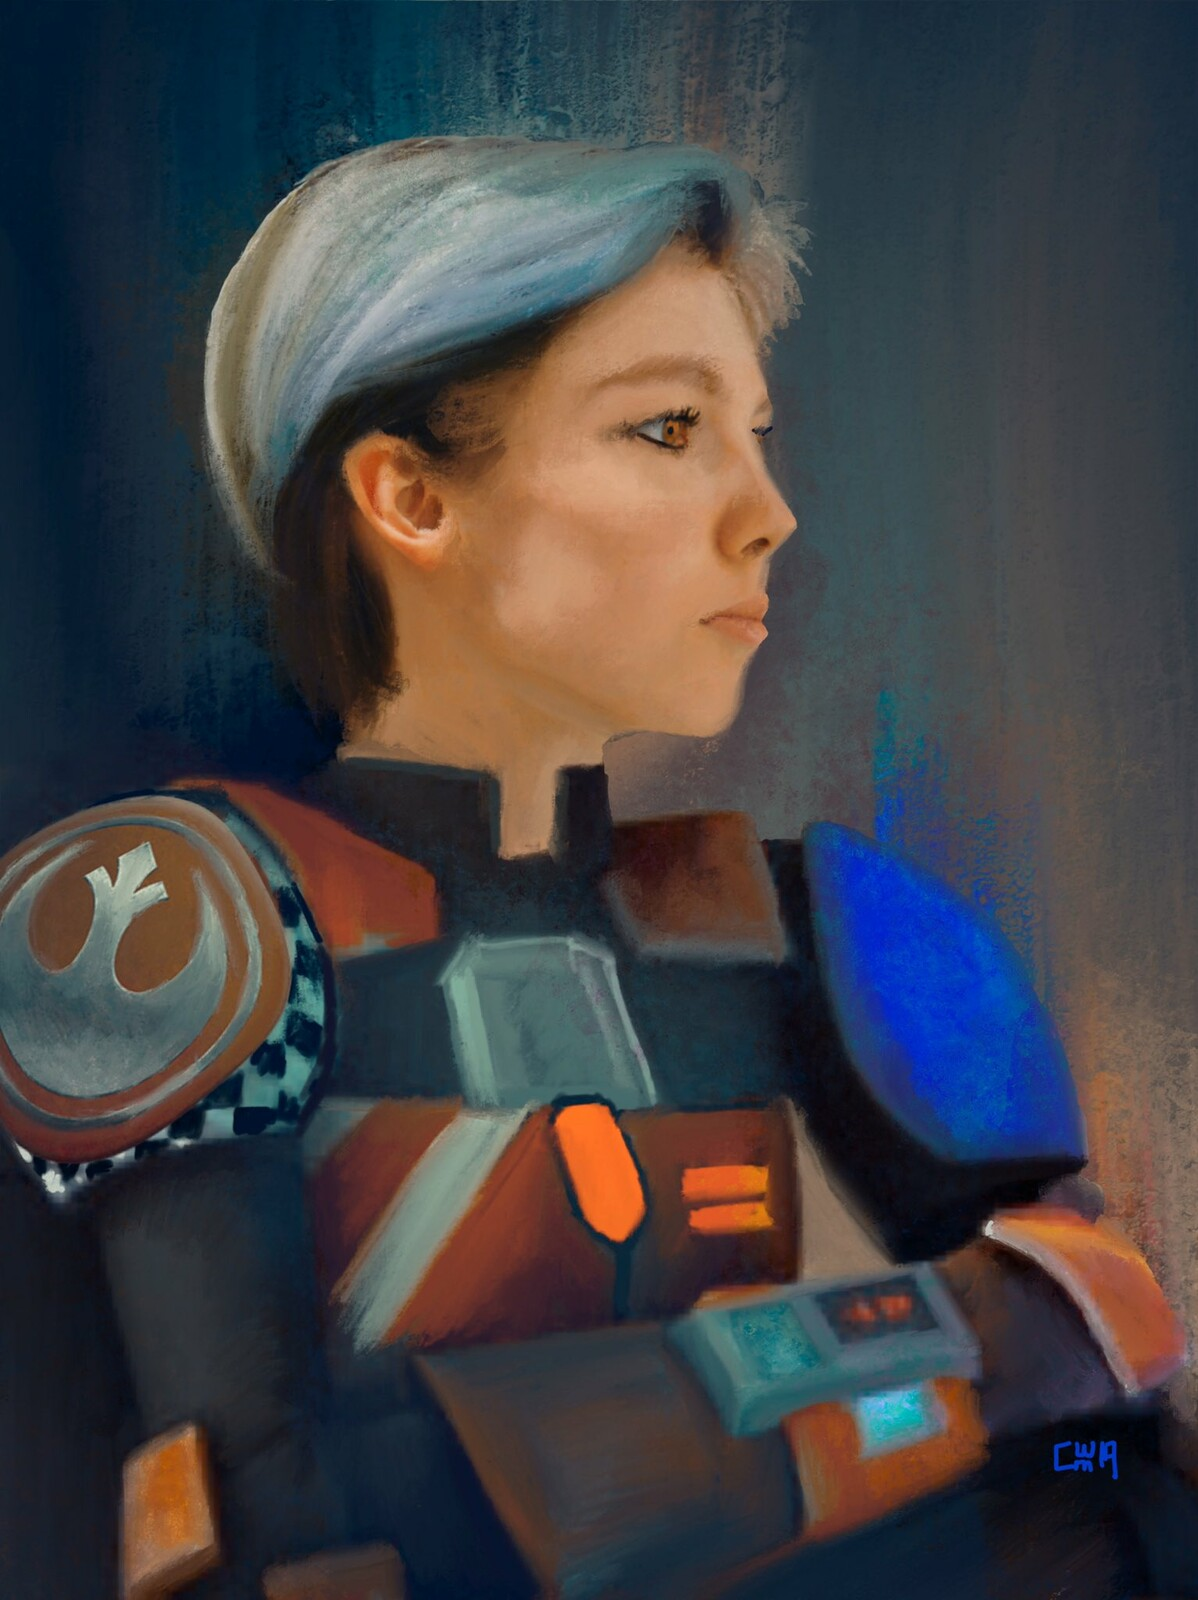 Star Wars Fan Art - Sabine Wren